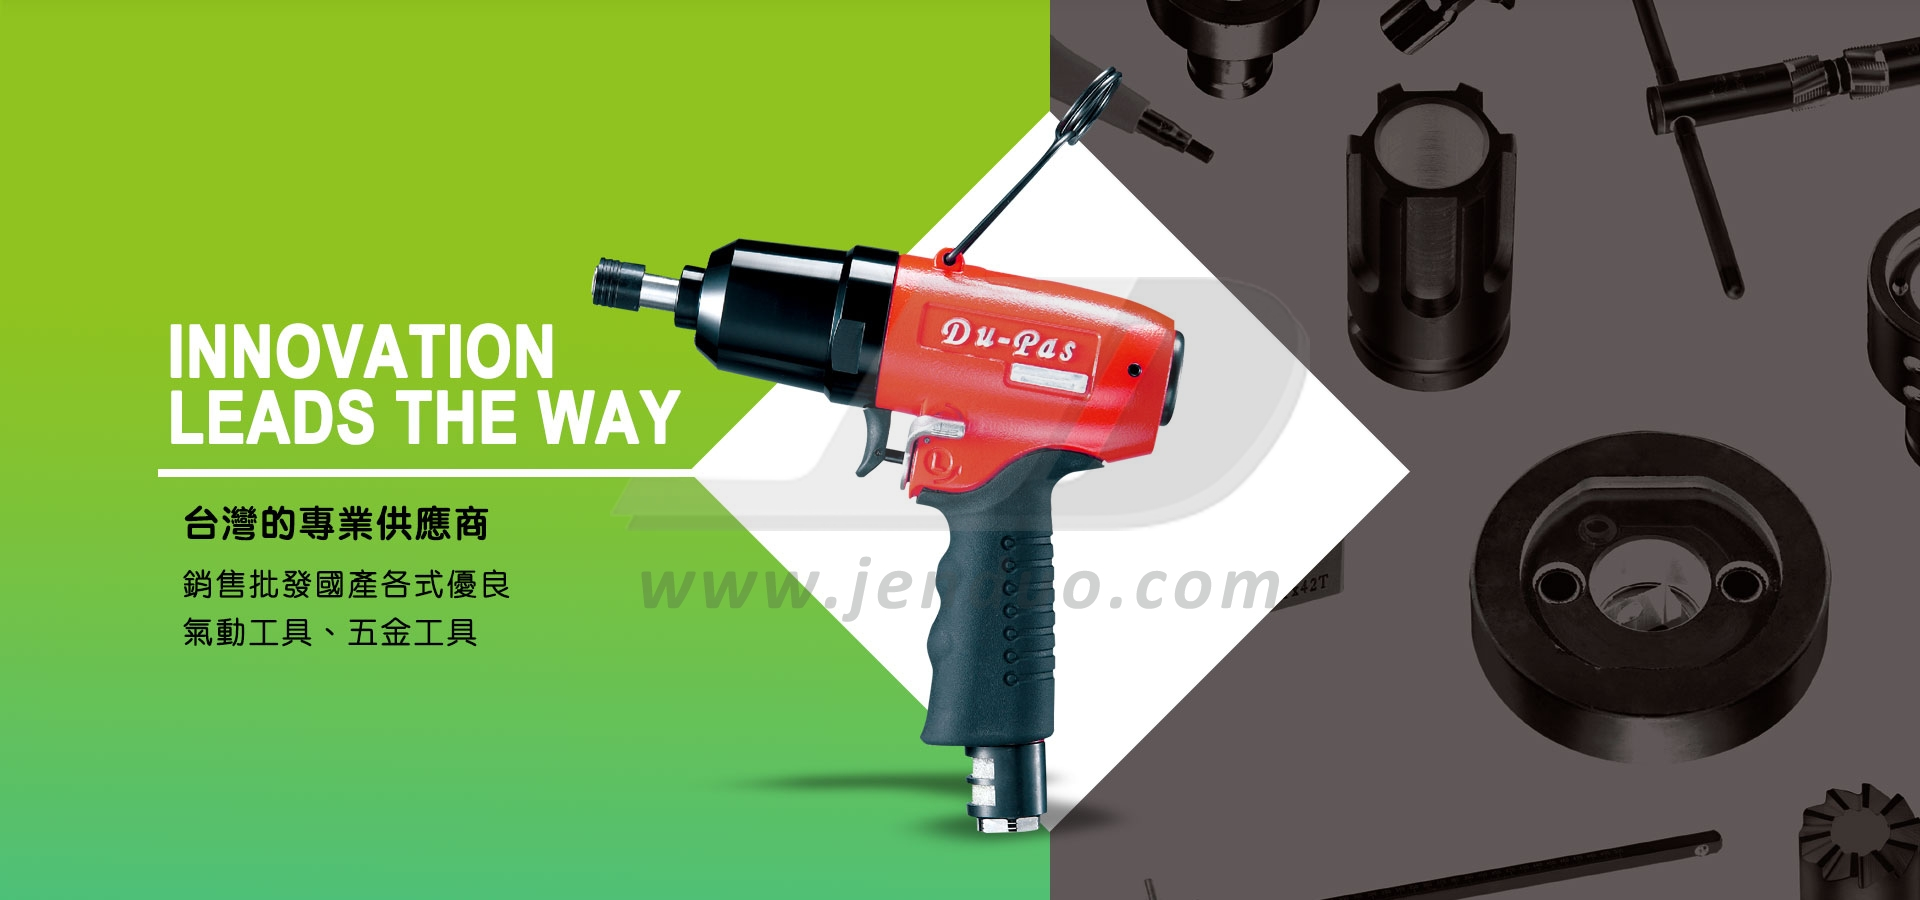 Jen Duo Trading: Selling and selling all kinds of domestic excellent pneumatic tools, hardware tools, bicycle tools